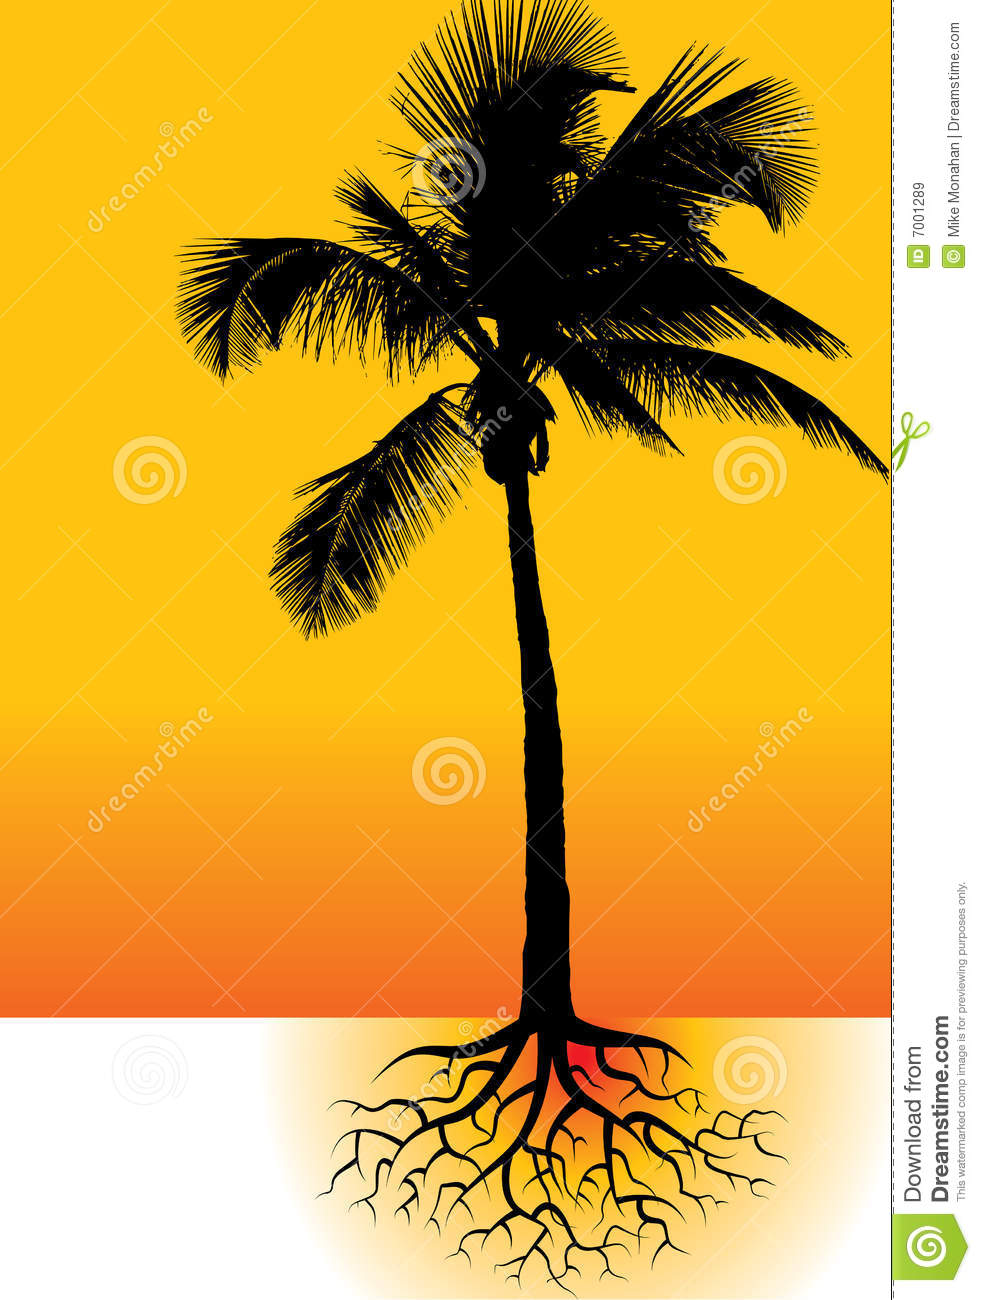 Palm Tree And Roots Royalty Free Stock Images.